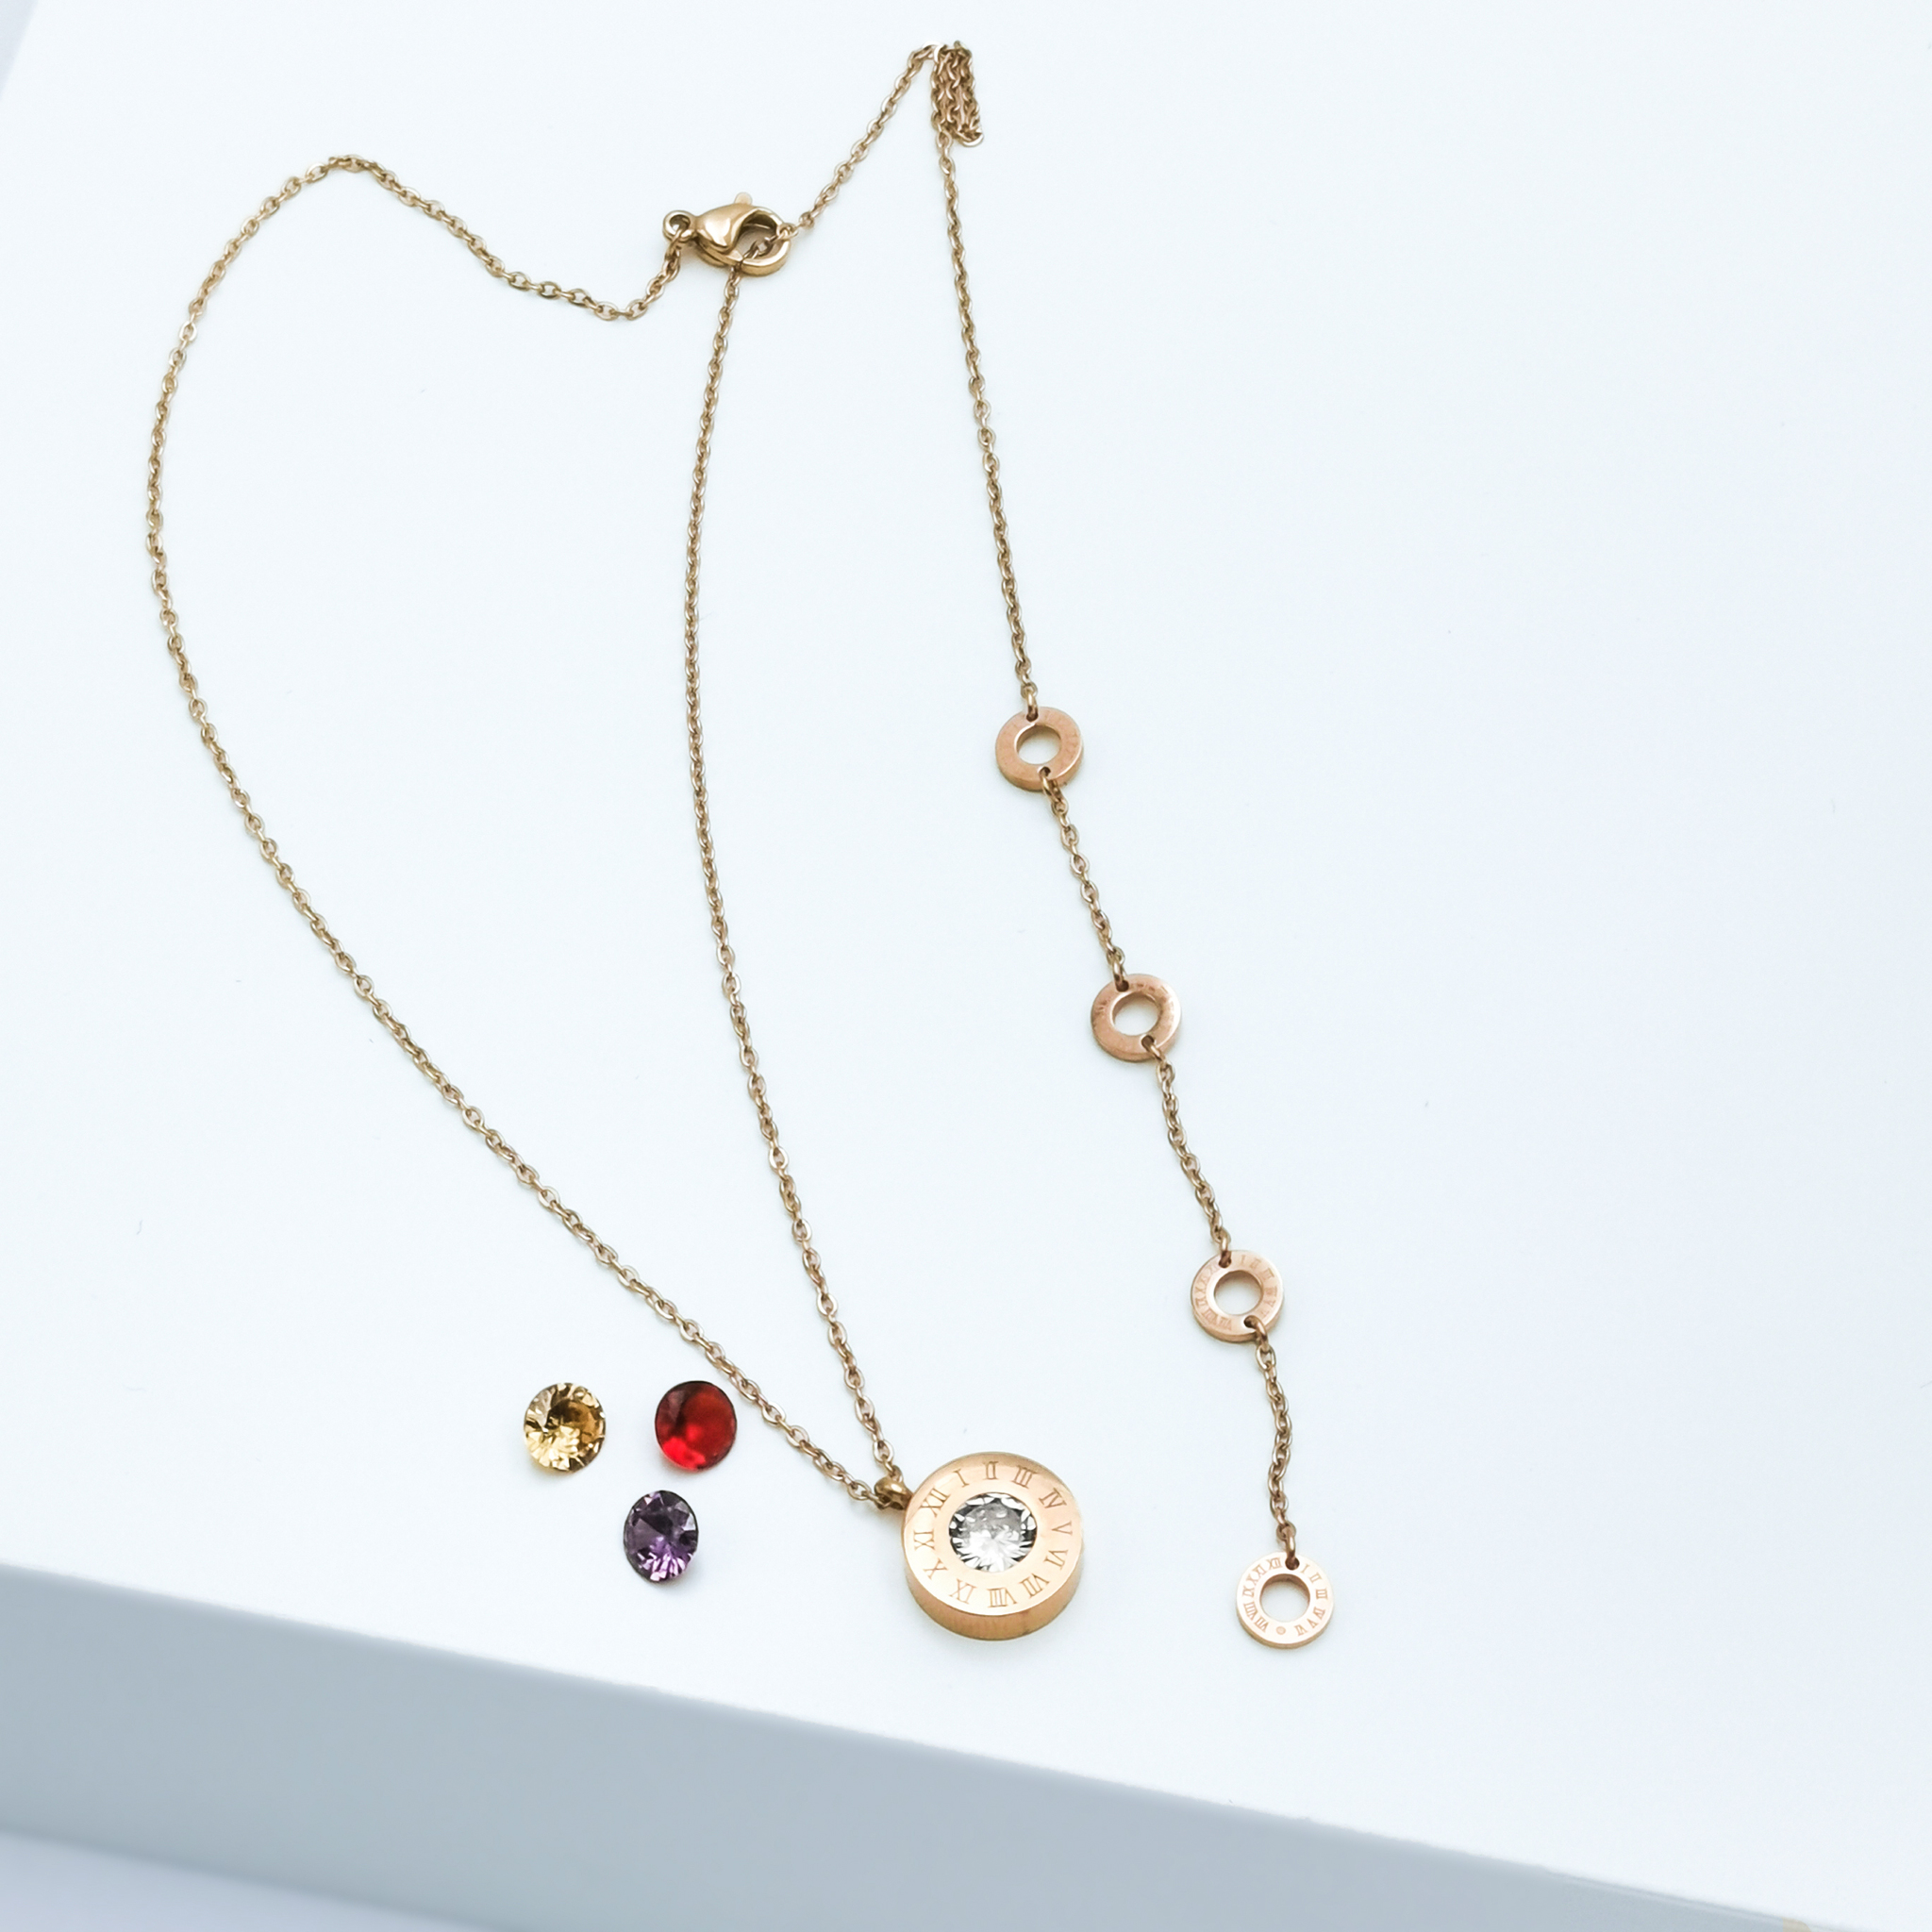 4 Queen Diamonds Necklace Rose Gold Edition Halsband - SWEVALI